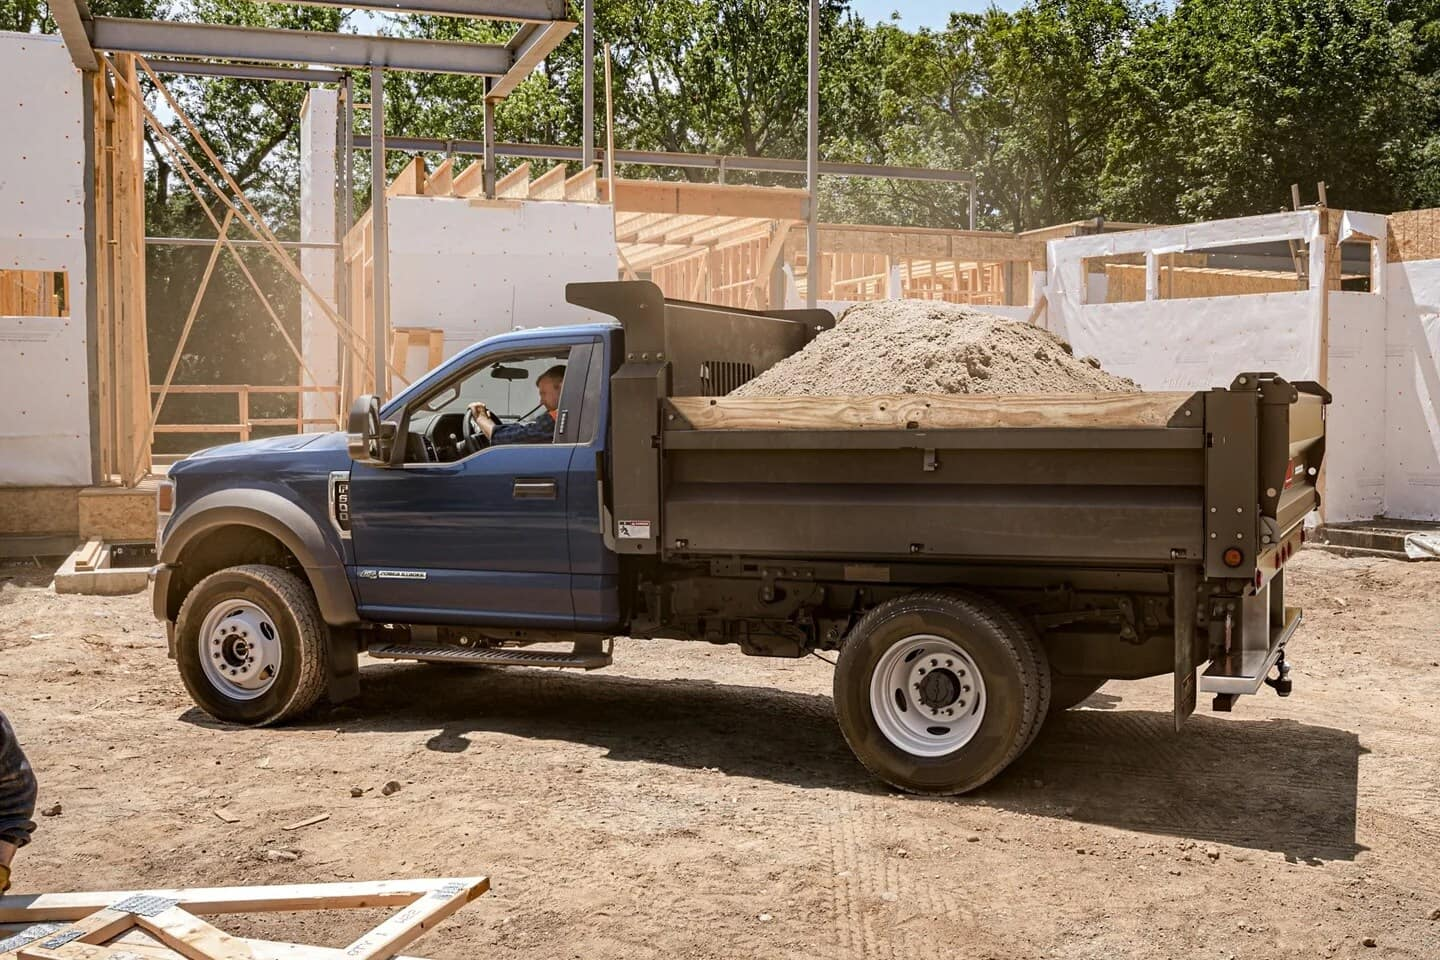 Ford dump truck carrying load of dirt